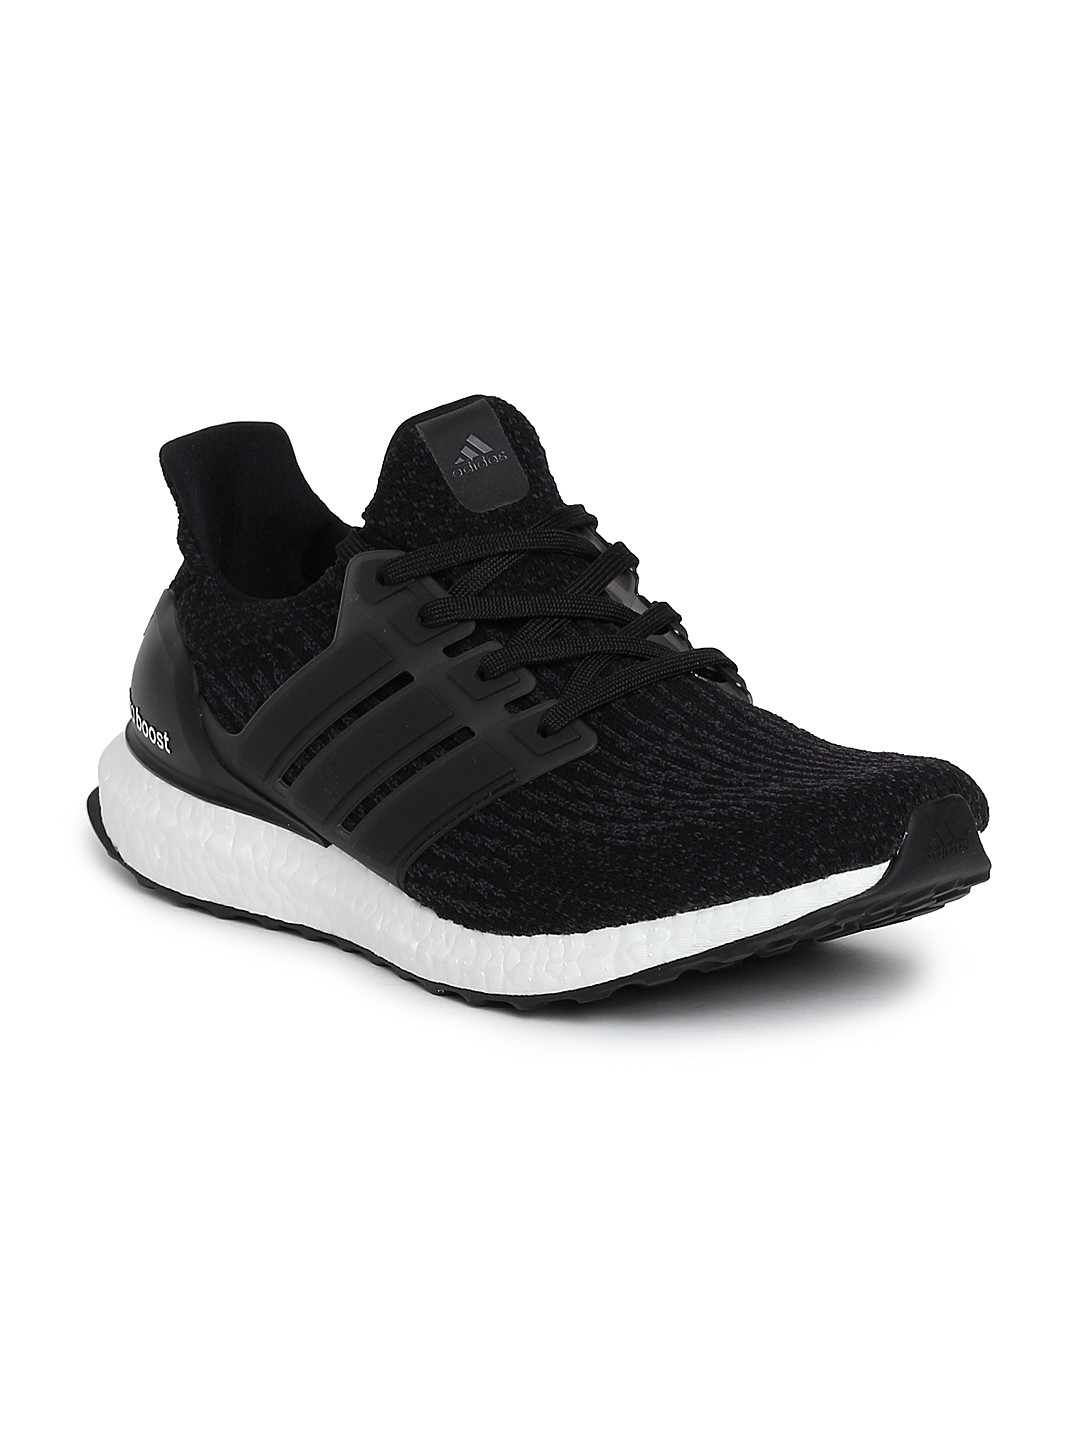 b0f422dcd4e7 Buy ADIDAS Men Black ULTRABOOST Running Shoes - Sports Shoes for Men ...